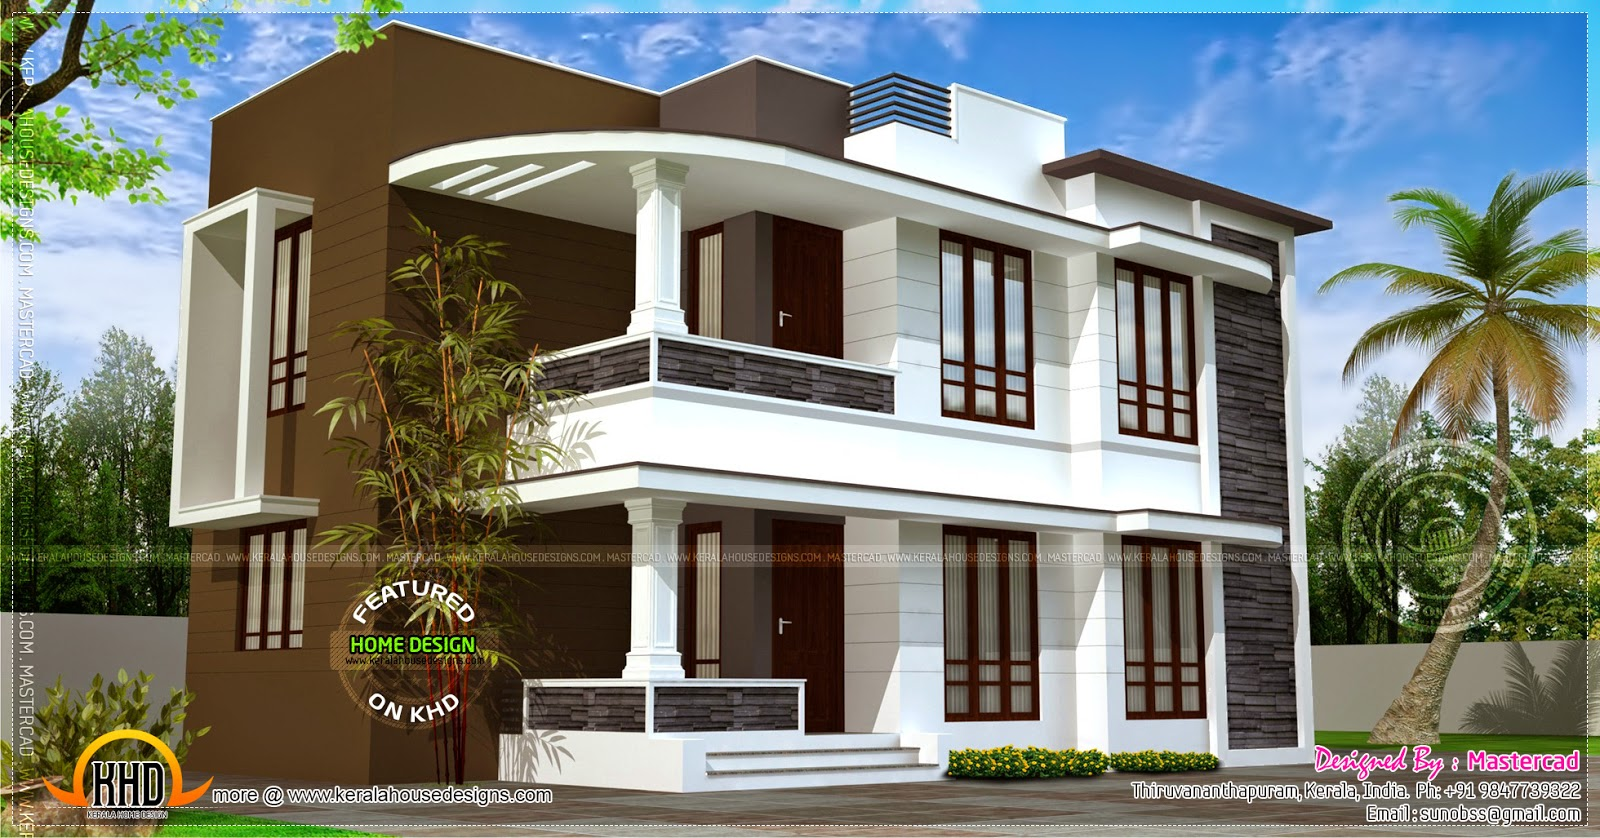 Modern 1500 Sqft House Exterior Kerala Home Design And